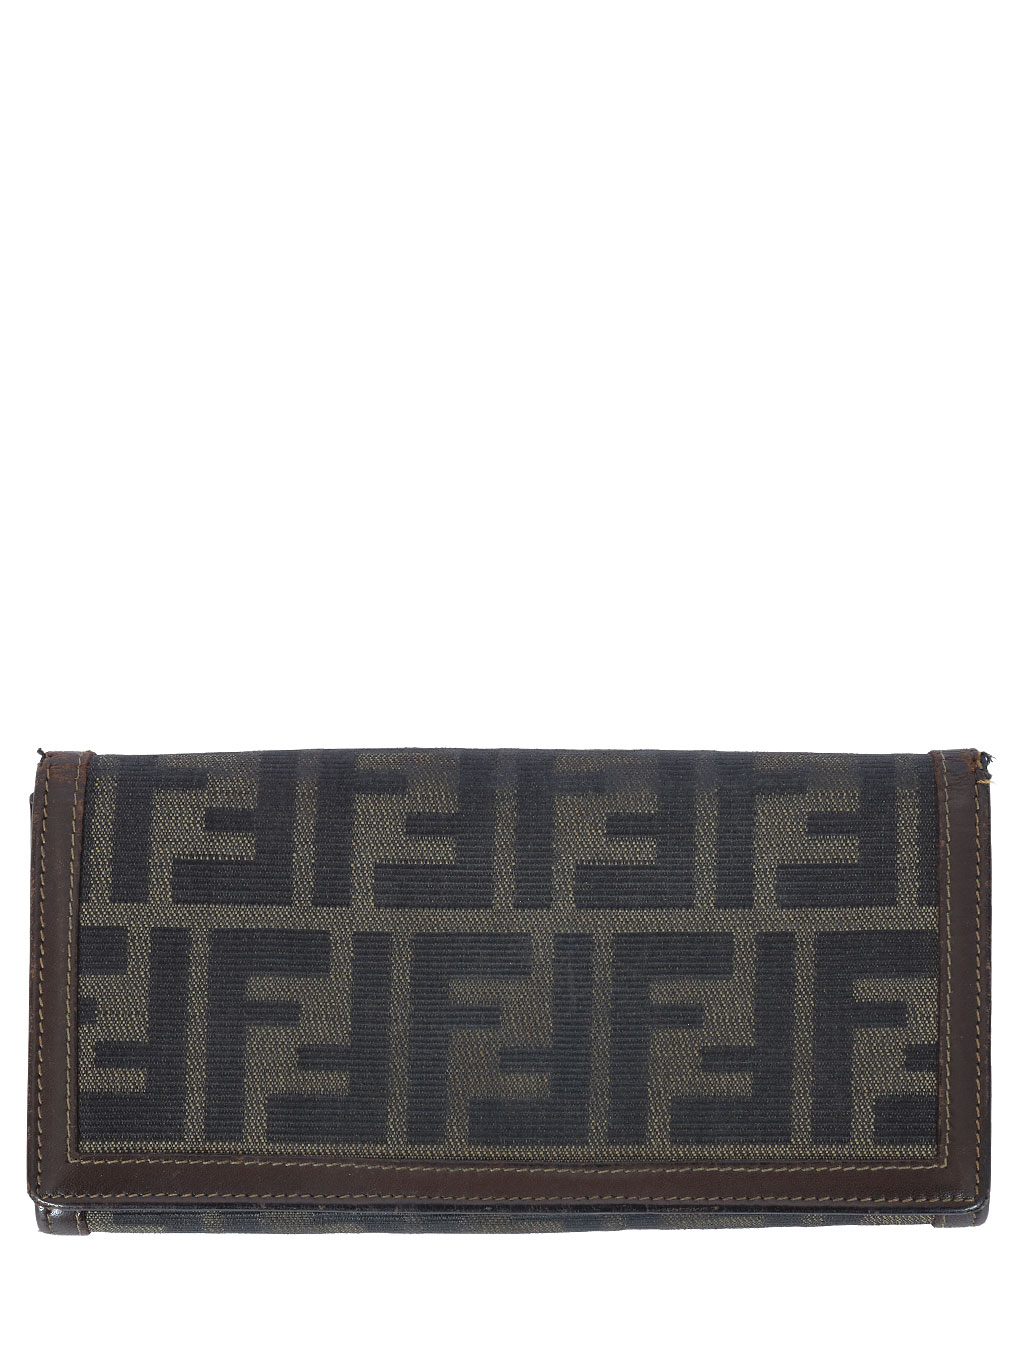 FENDI FF柄 LONG WALLET